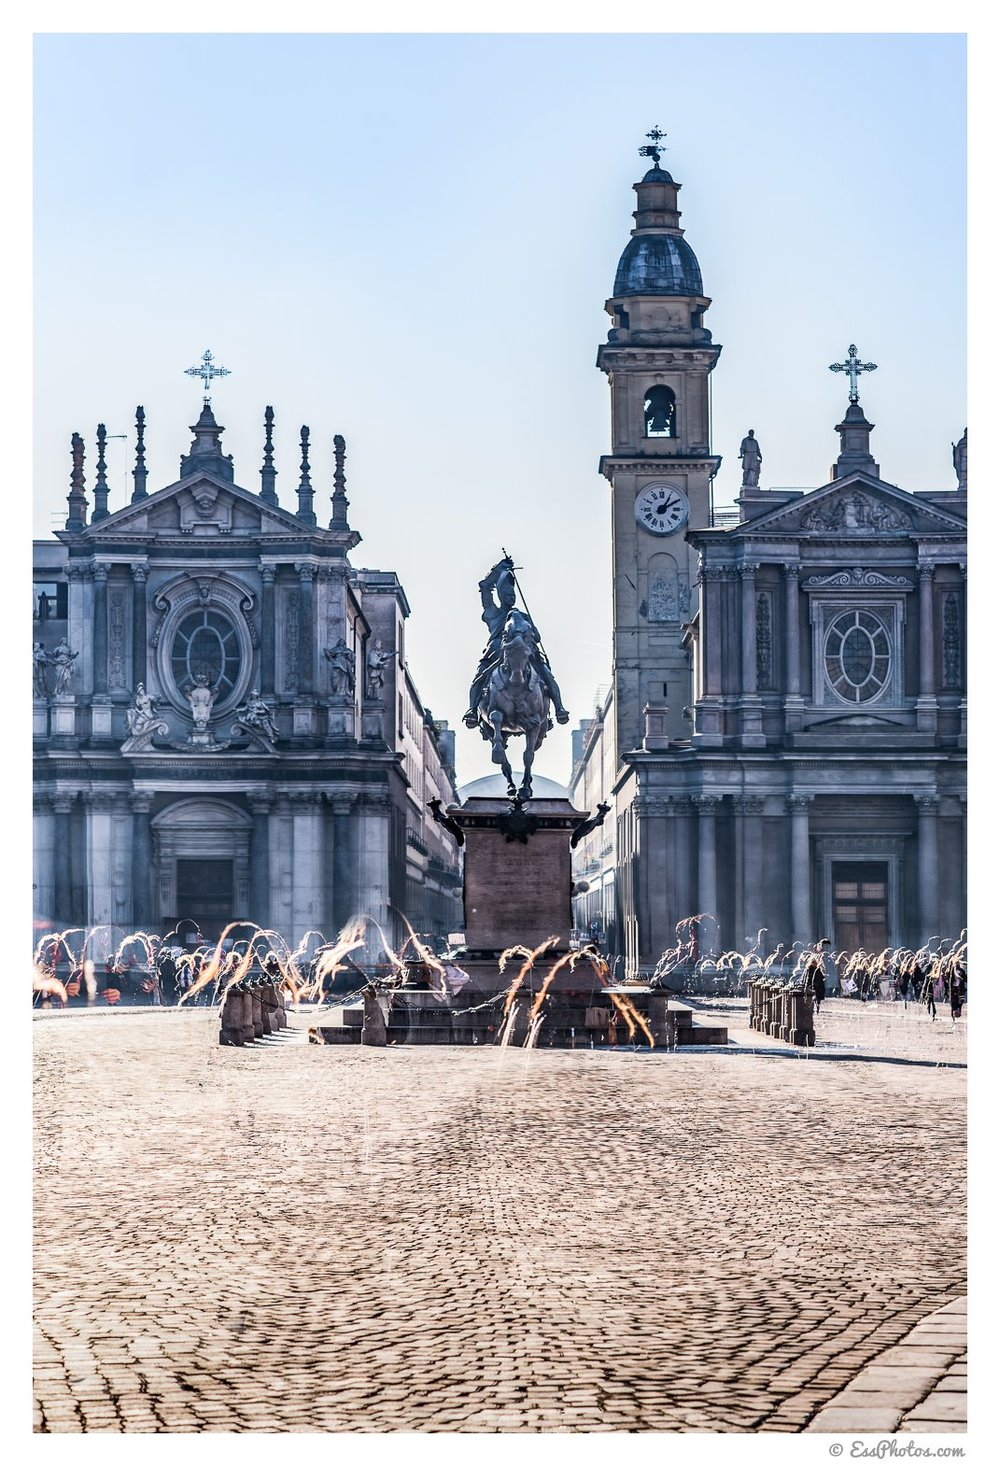 The ghosts of piazza San Carlo. 85mm, 1/1000, f/5.6, ISO 100. Composite from 7 pictures. Shot on a full-frame camera.